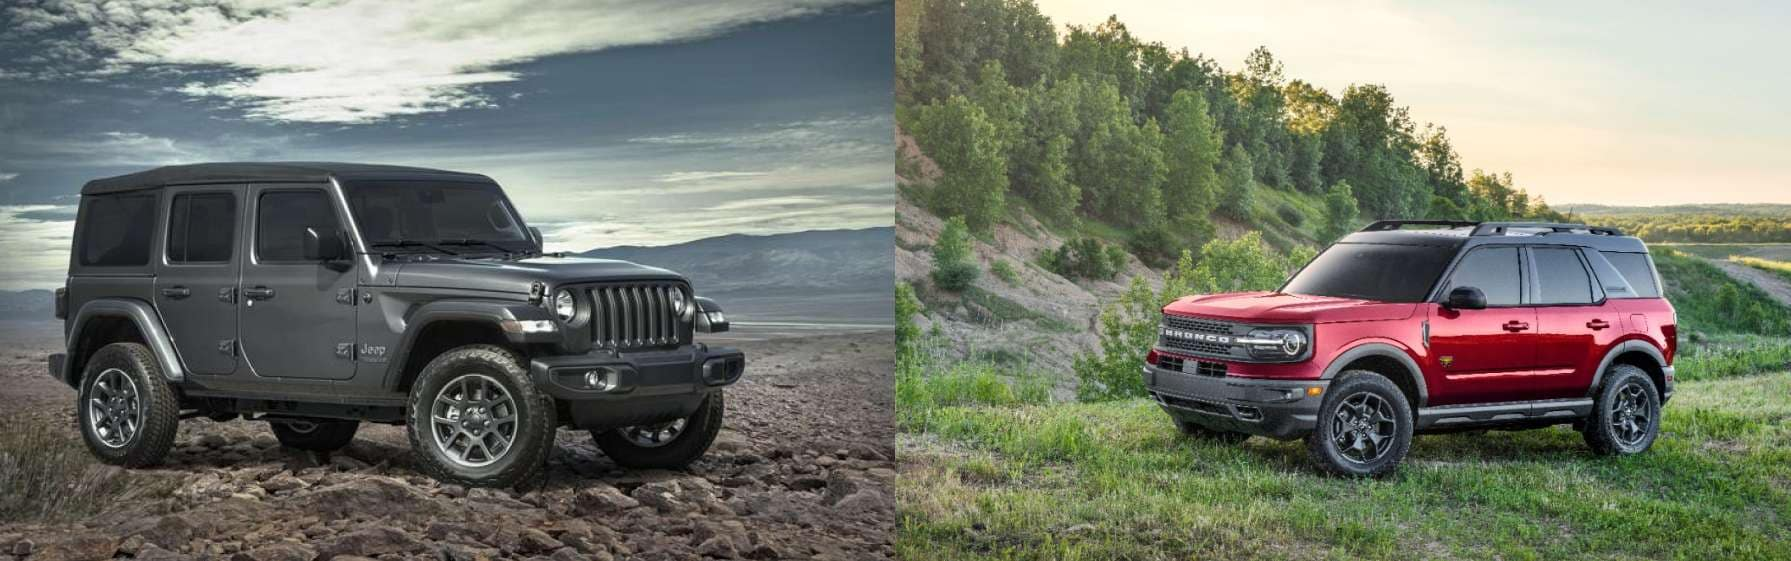 2021 jeep wrangler and 2021 ford bronco